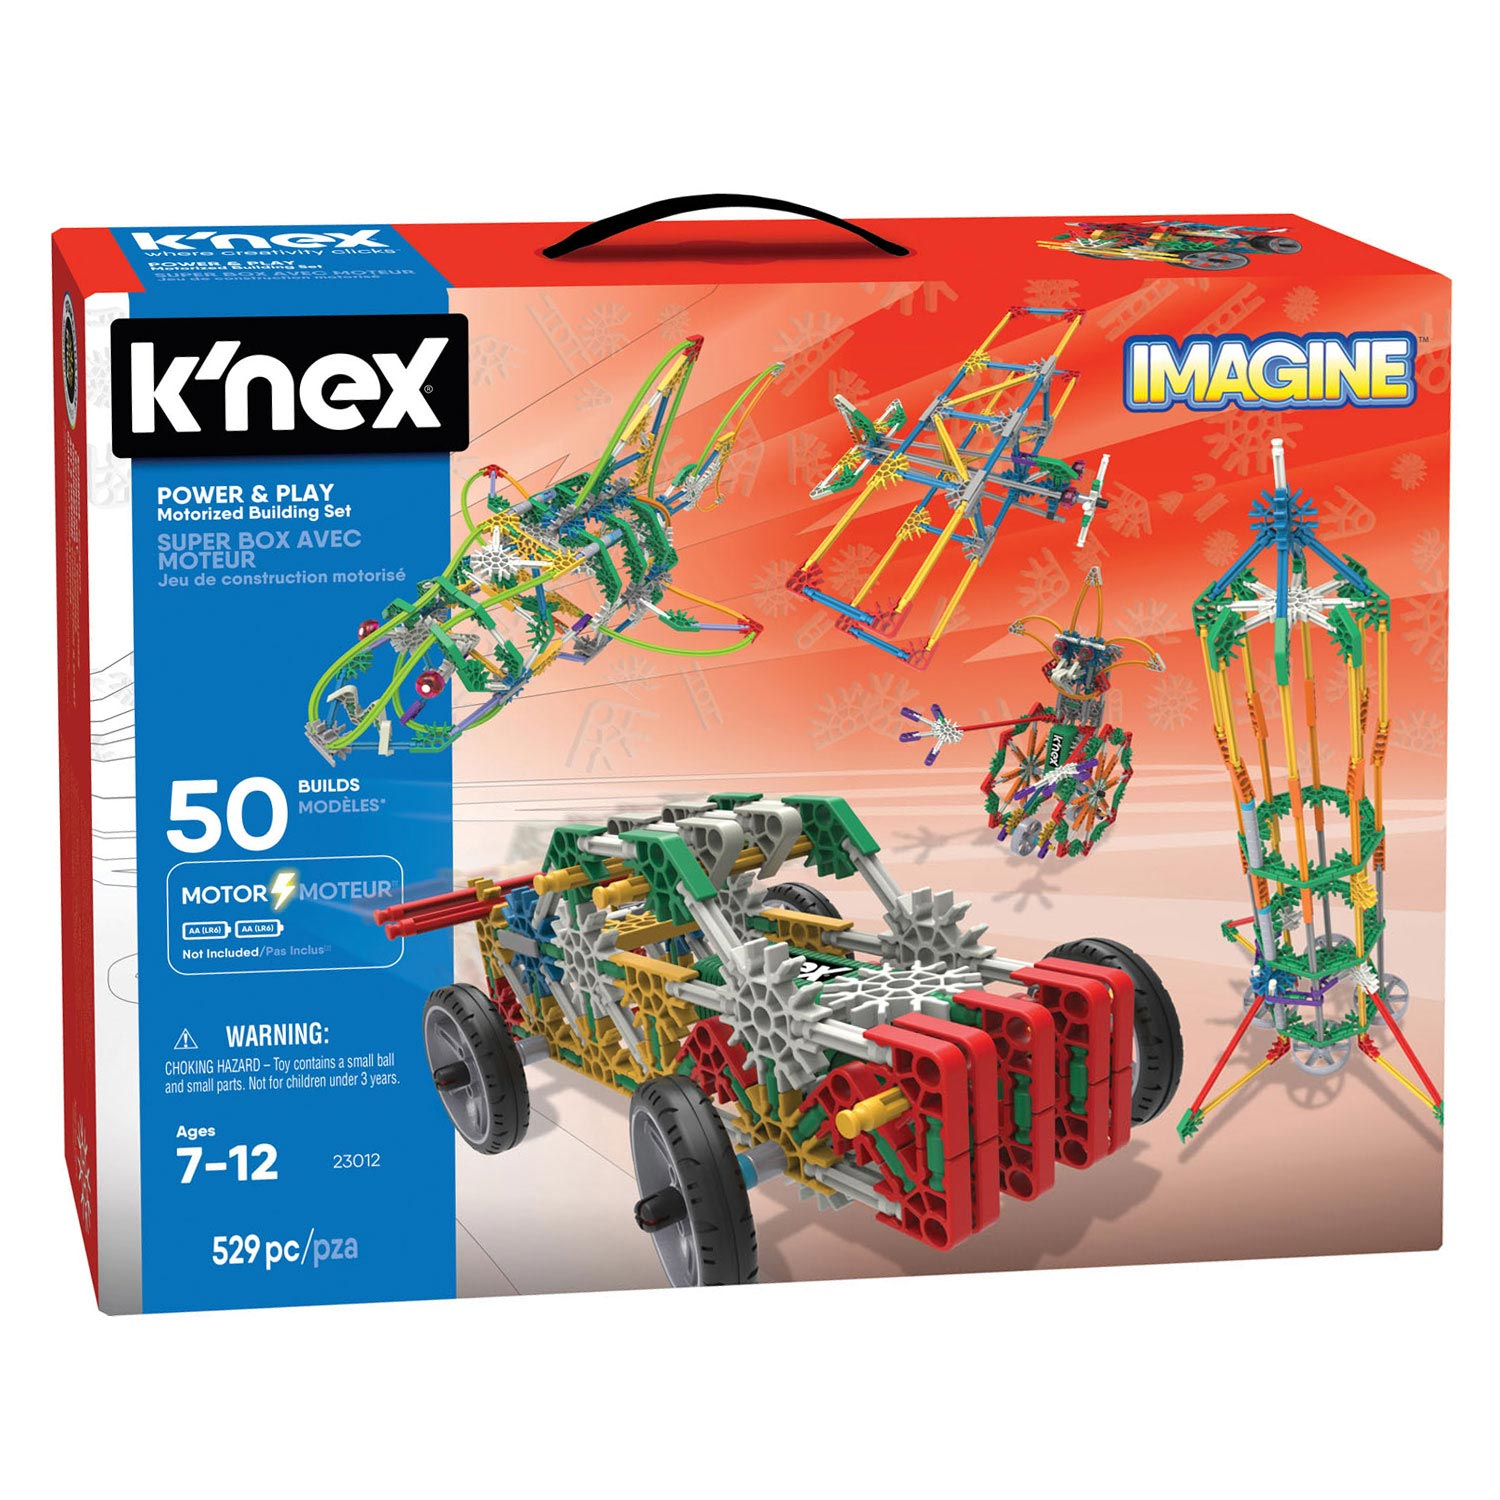 K'Nex Power & Play, 529dlg.